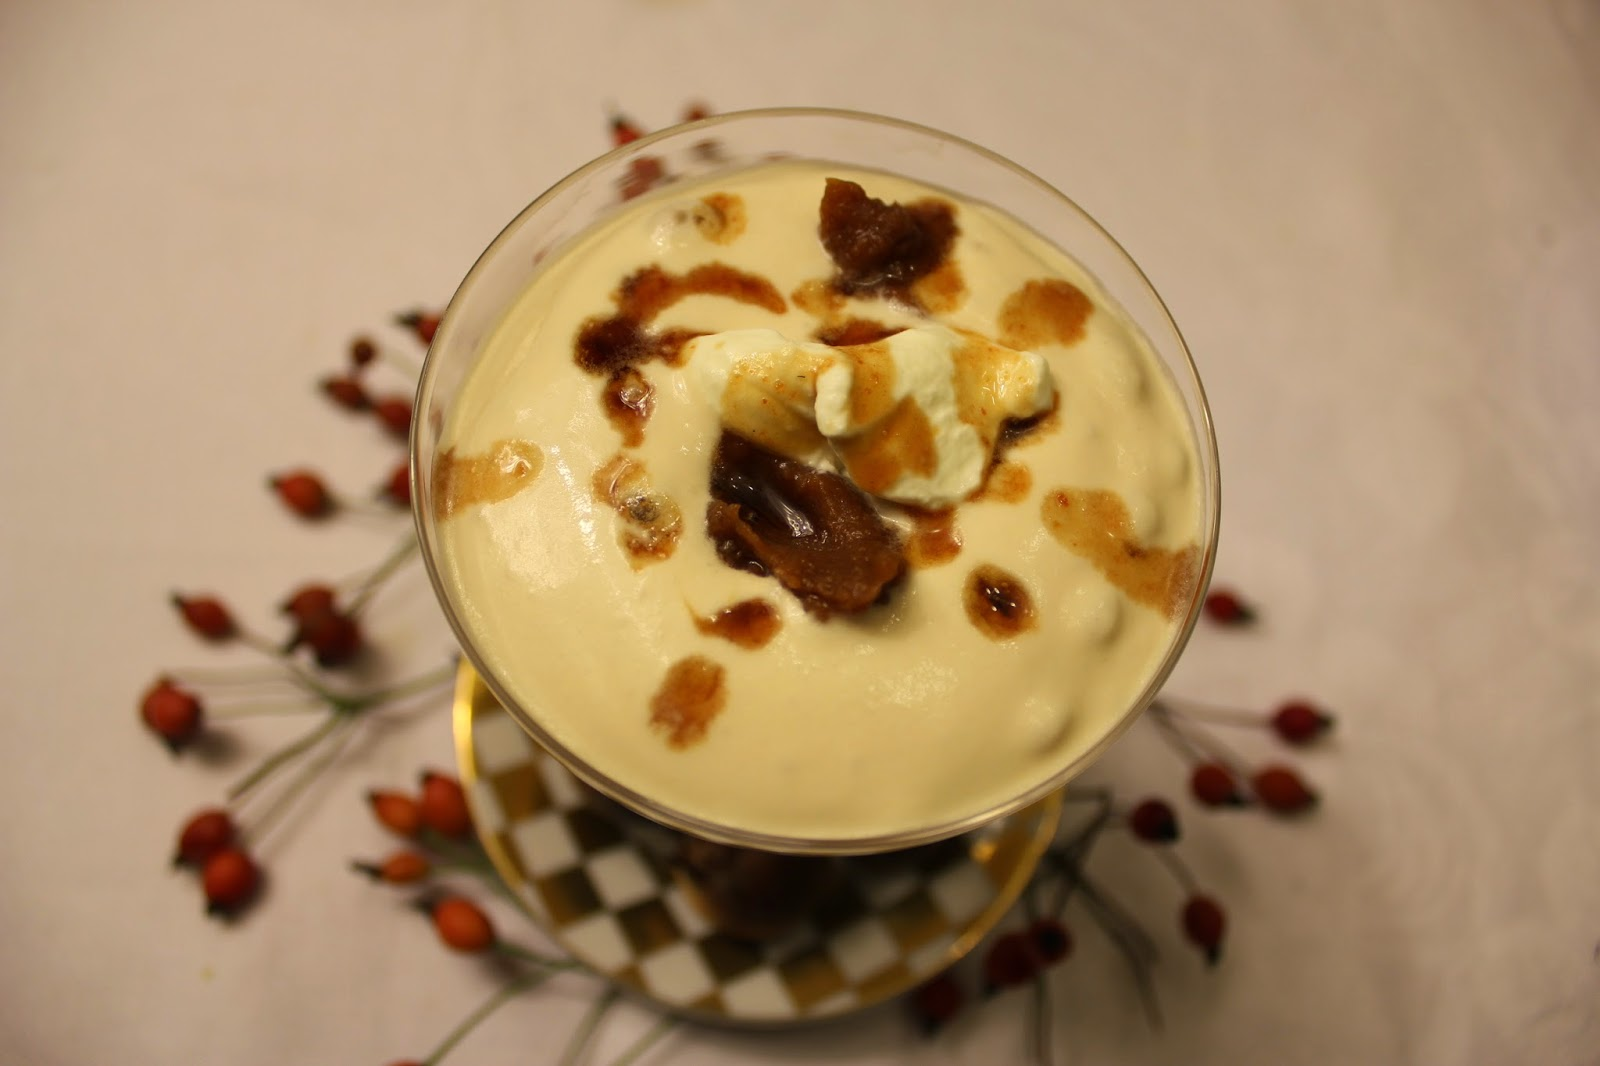 organic syllabub cup with wild fruits